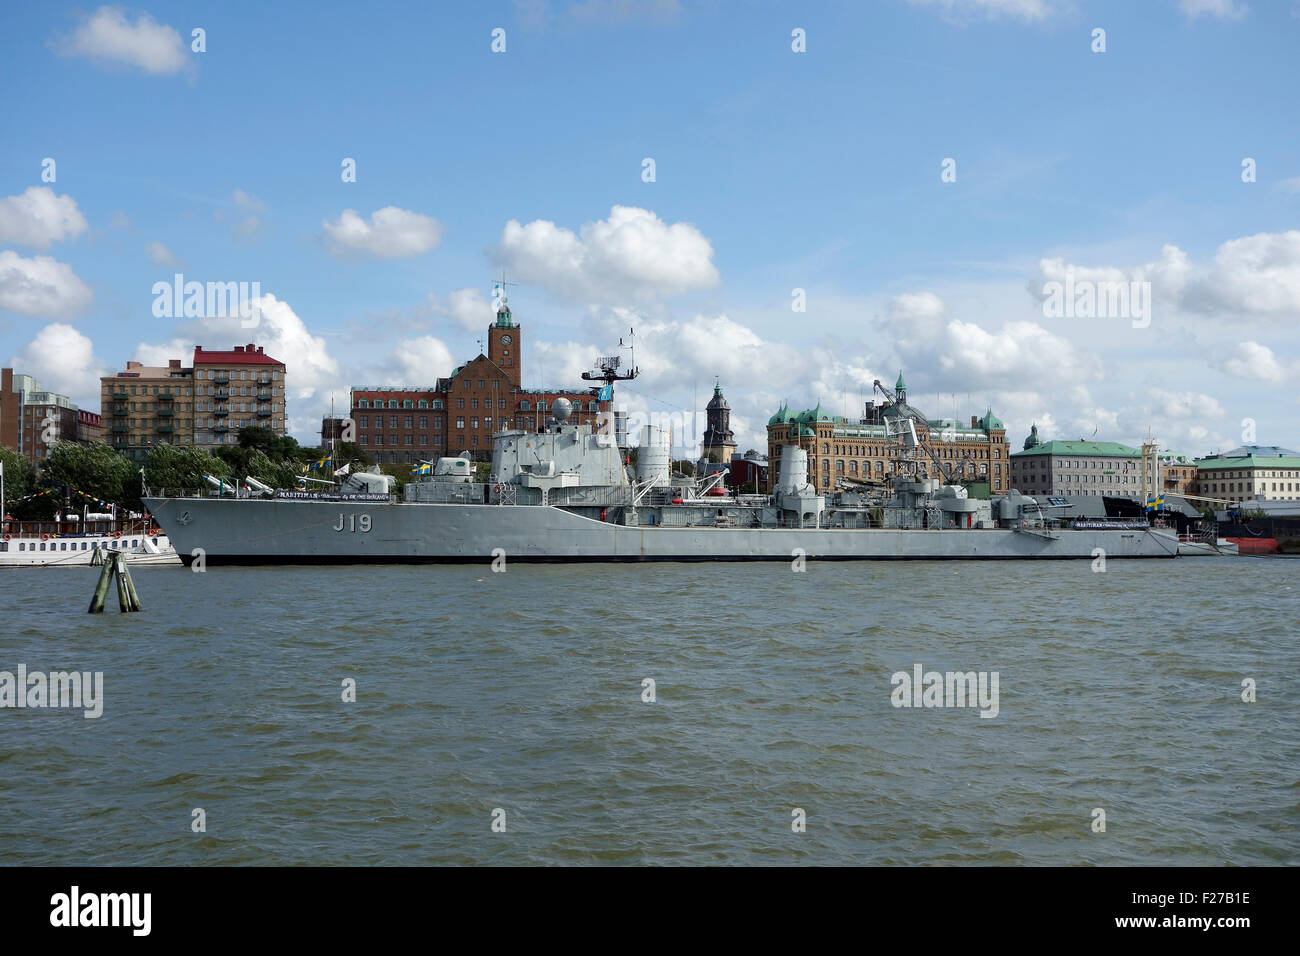 If HMS Smaland previously a destroyer warship and now anchored in Maritiman museum in gothenburg, Sweden - Stock Image